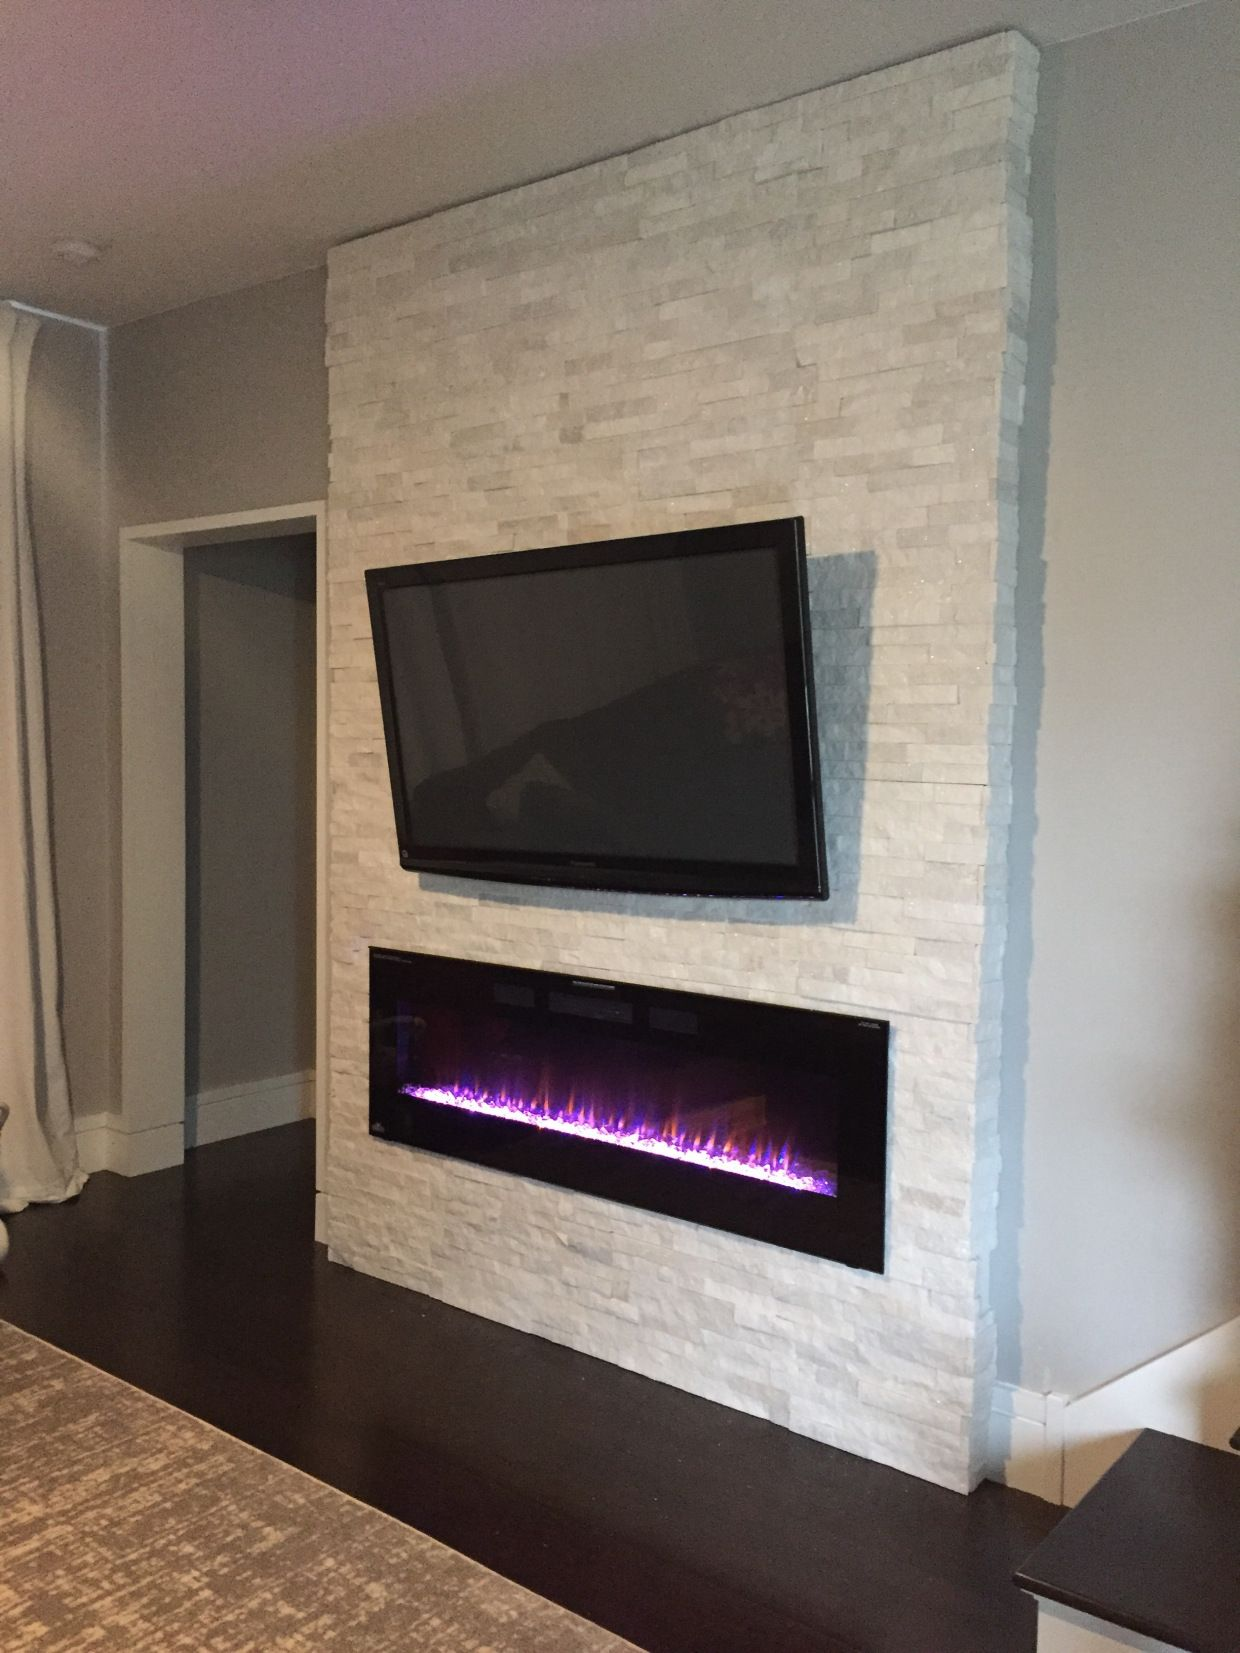 Fireplace Surround Finale Build A Fireplace Wall Mounted